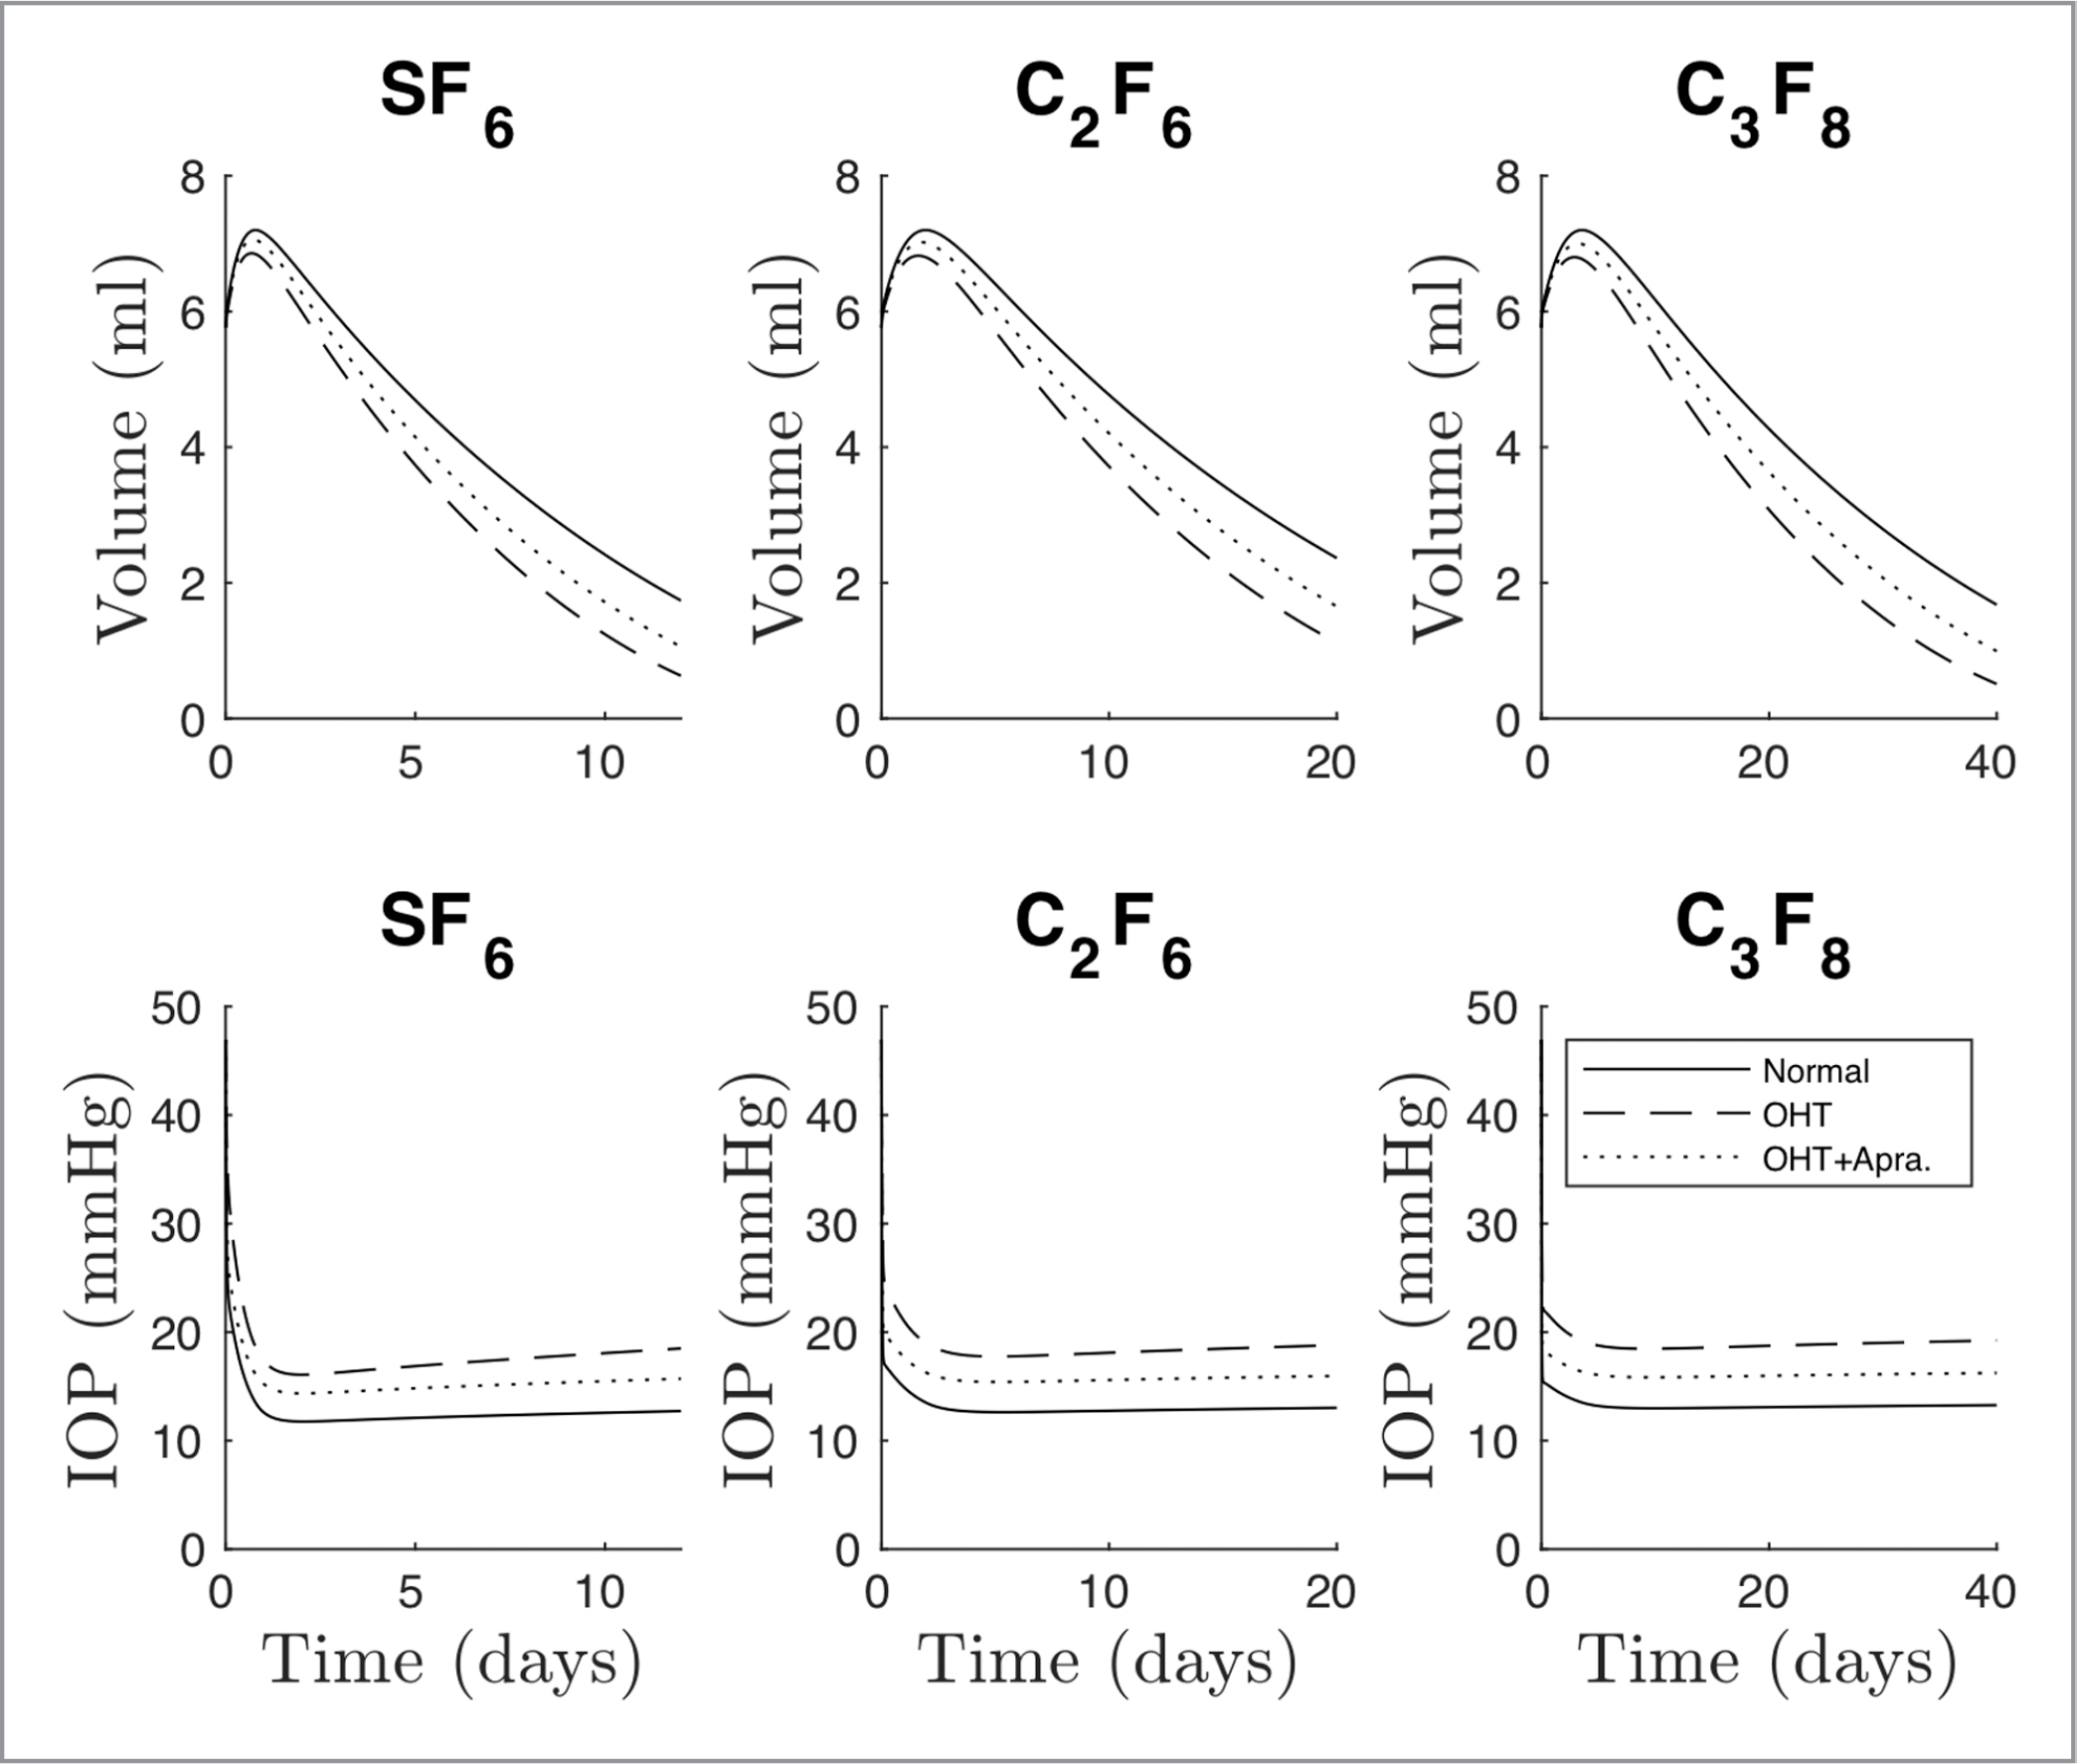 The effect of ocular hypertension (OHT) and apraclonidine treatment on postoperative volume reduction and intraocular pressure (IOP). The top graphs demonstrate the increased gas volume during the expansile phase, followed by a gradual reduction over time for 22.6% SF6, 13.9% C2F6, and 11.6% C3F8. Eyes with OHT do not achieve the same maximal fill as normal eyes, although the difference is reduced with apraclonidine treatment. The bottom graphs display change in IOP with time for all three gases in each aqueous outflow scenario.